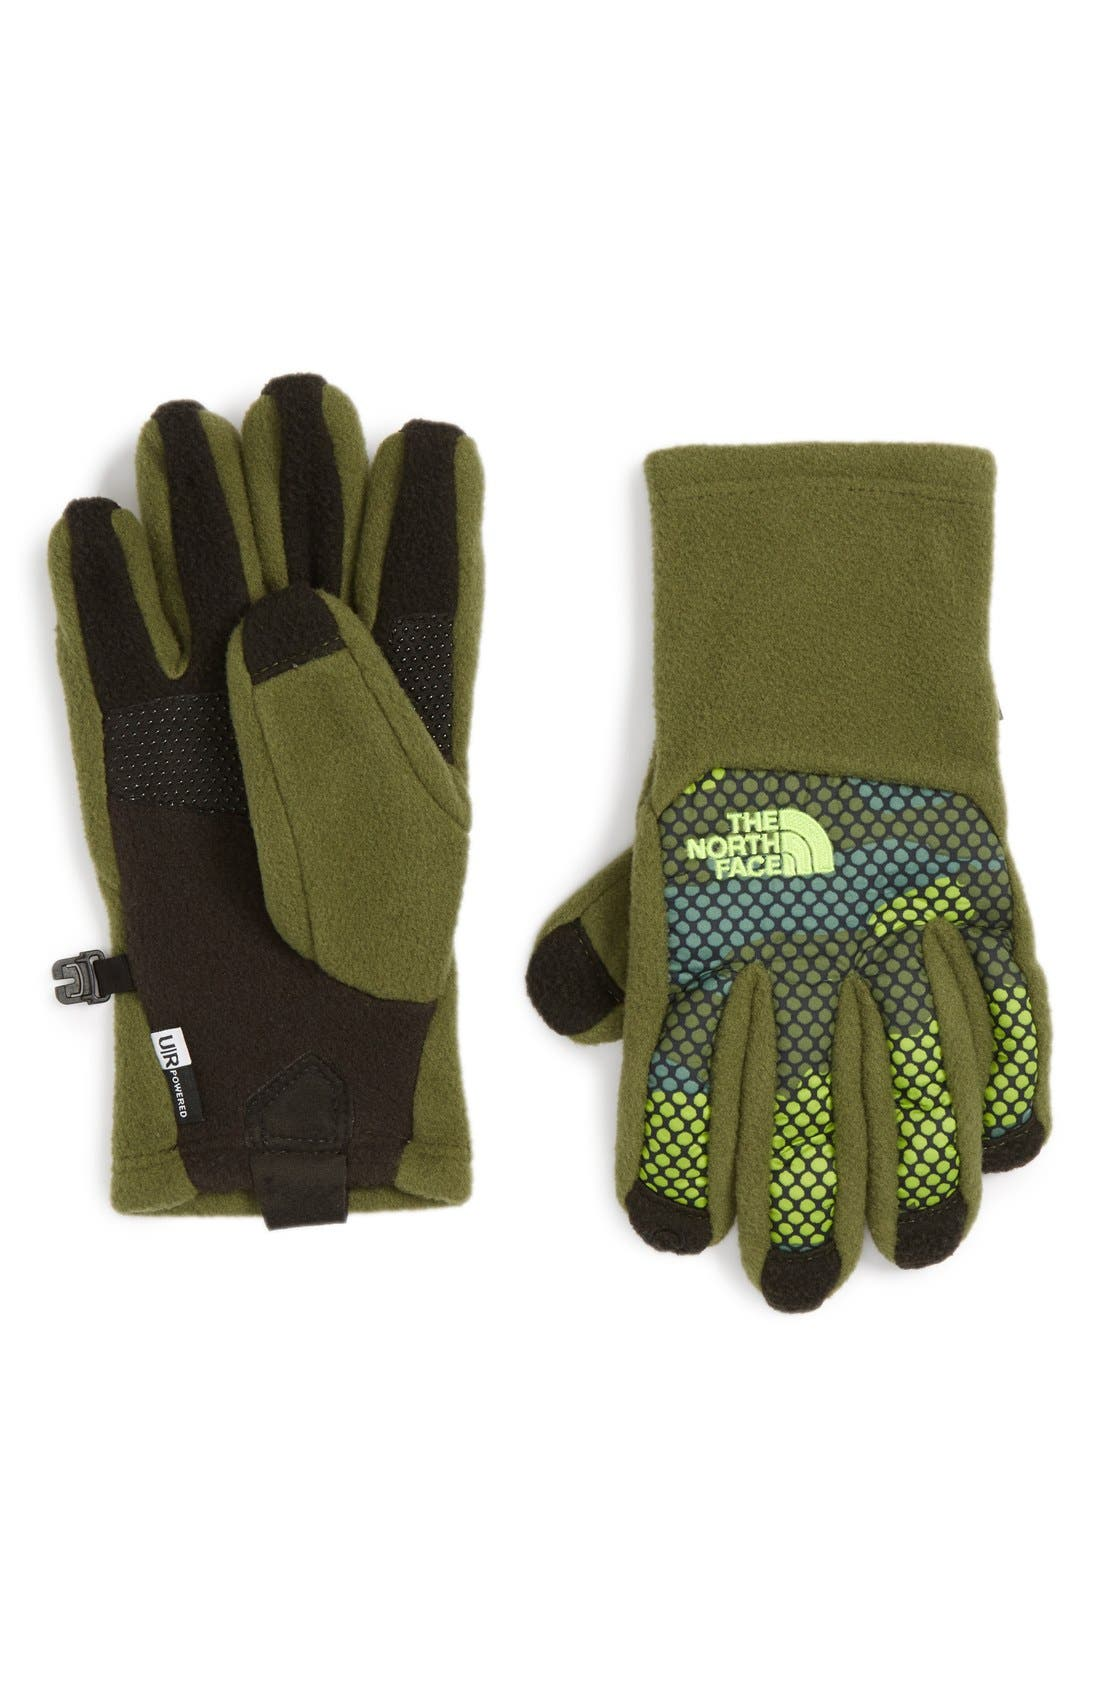 Alternate Image 1 Selected - The North Face 'Denali E-Tip' Gloves (Boys)